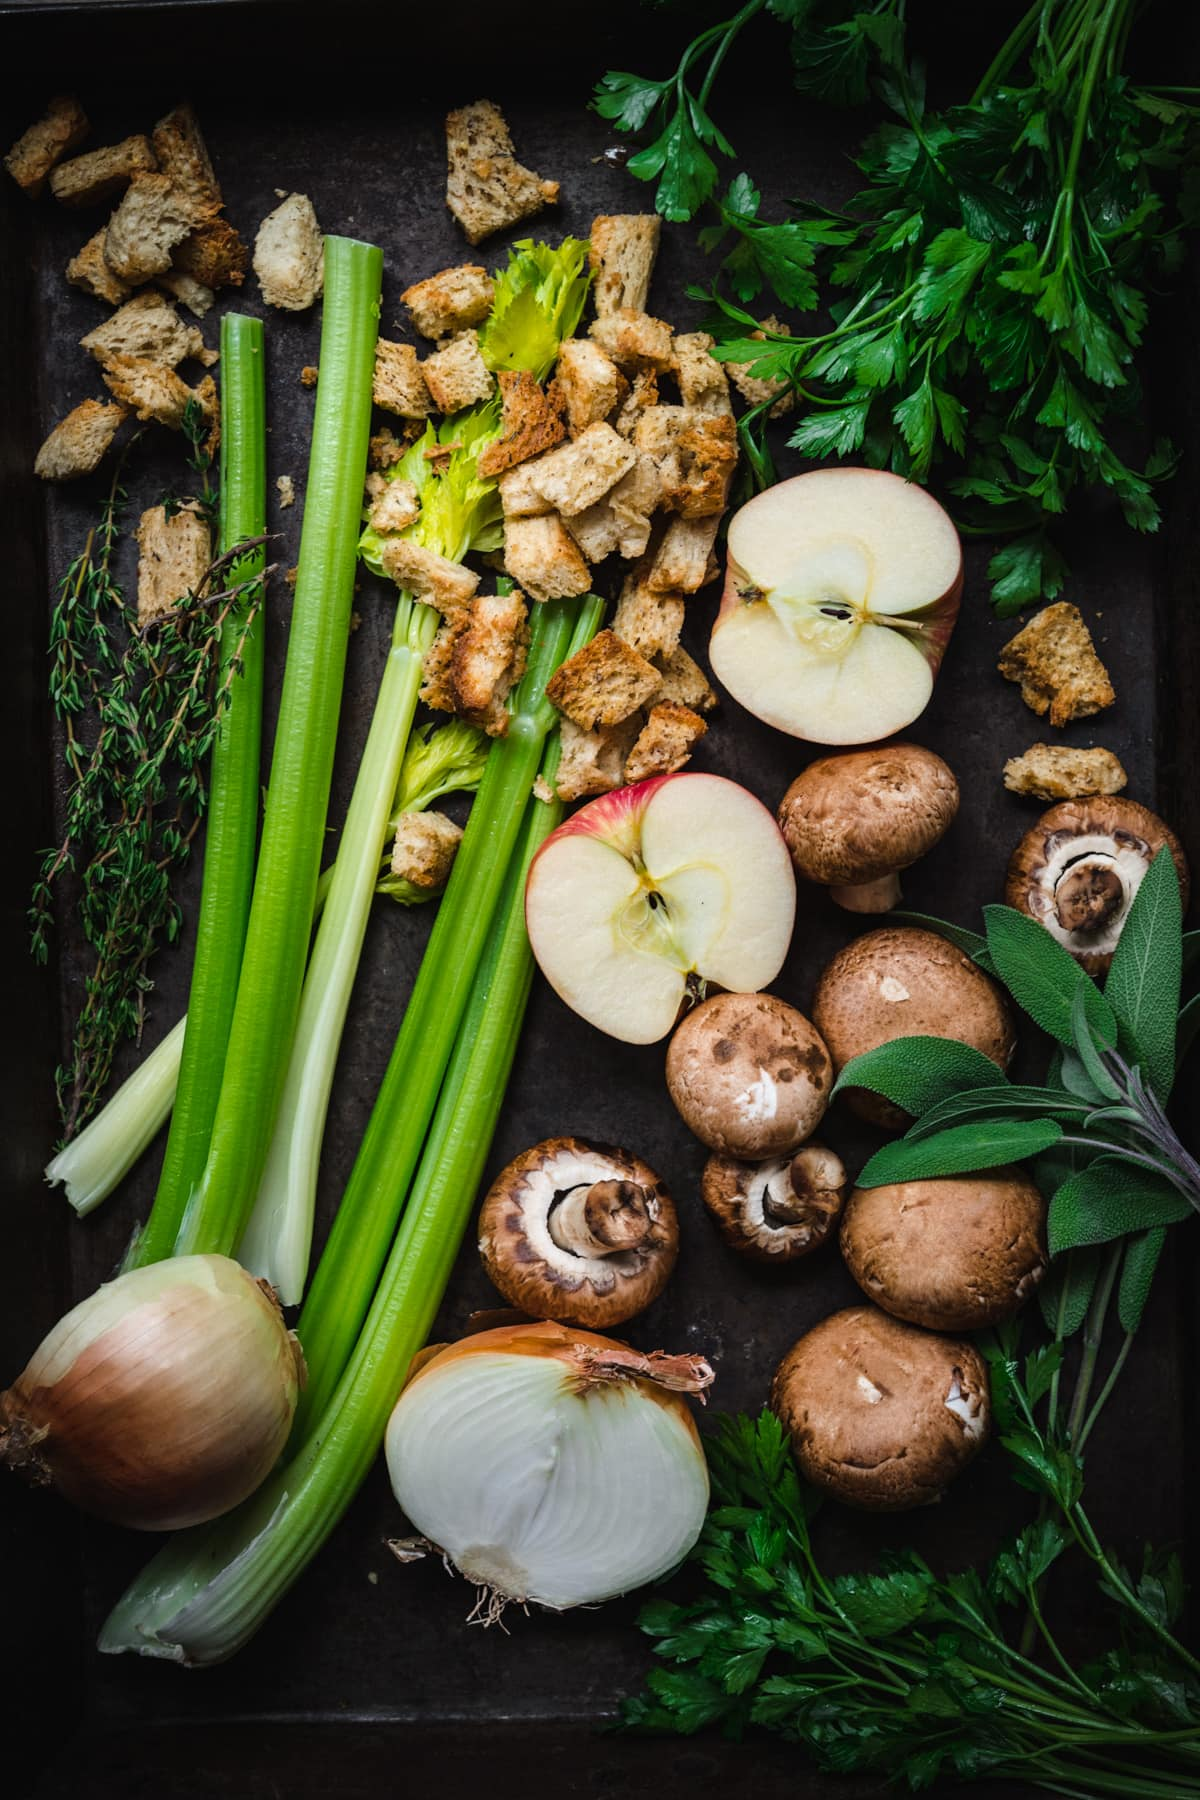 overhead view of ingredients for stuffing on a baking sheet, including celery, apple, mushrooms, onions and toasted bread.